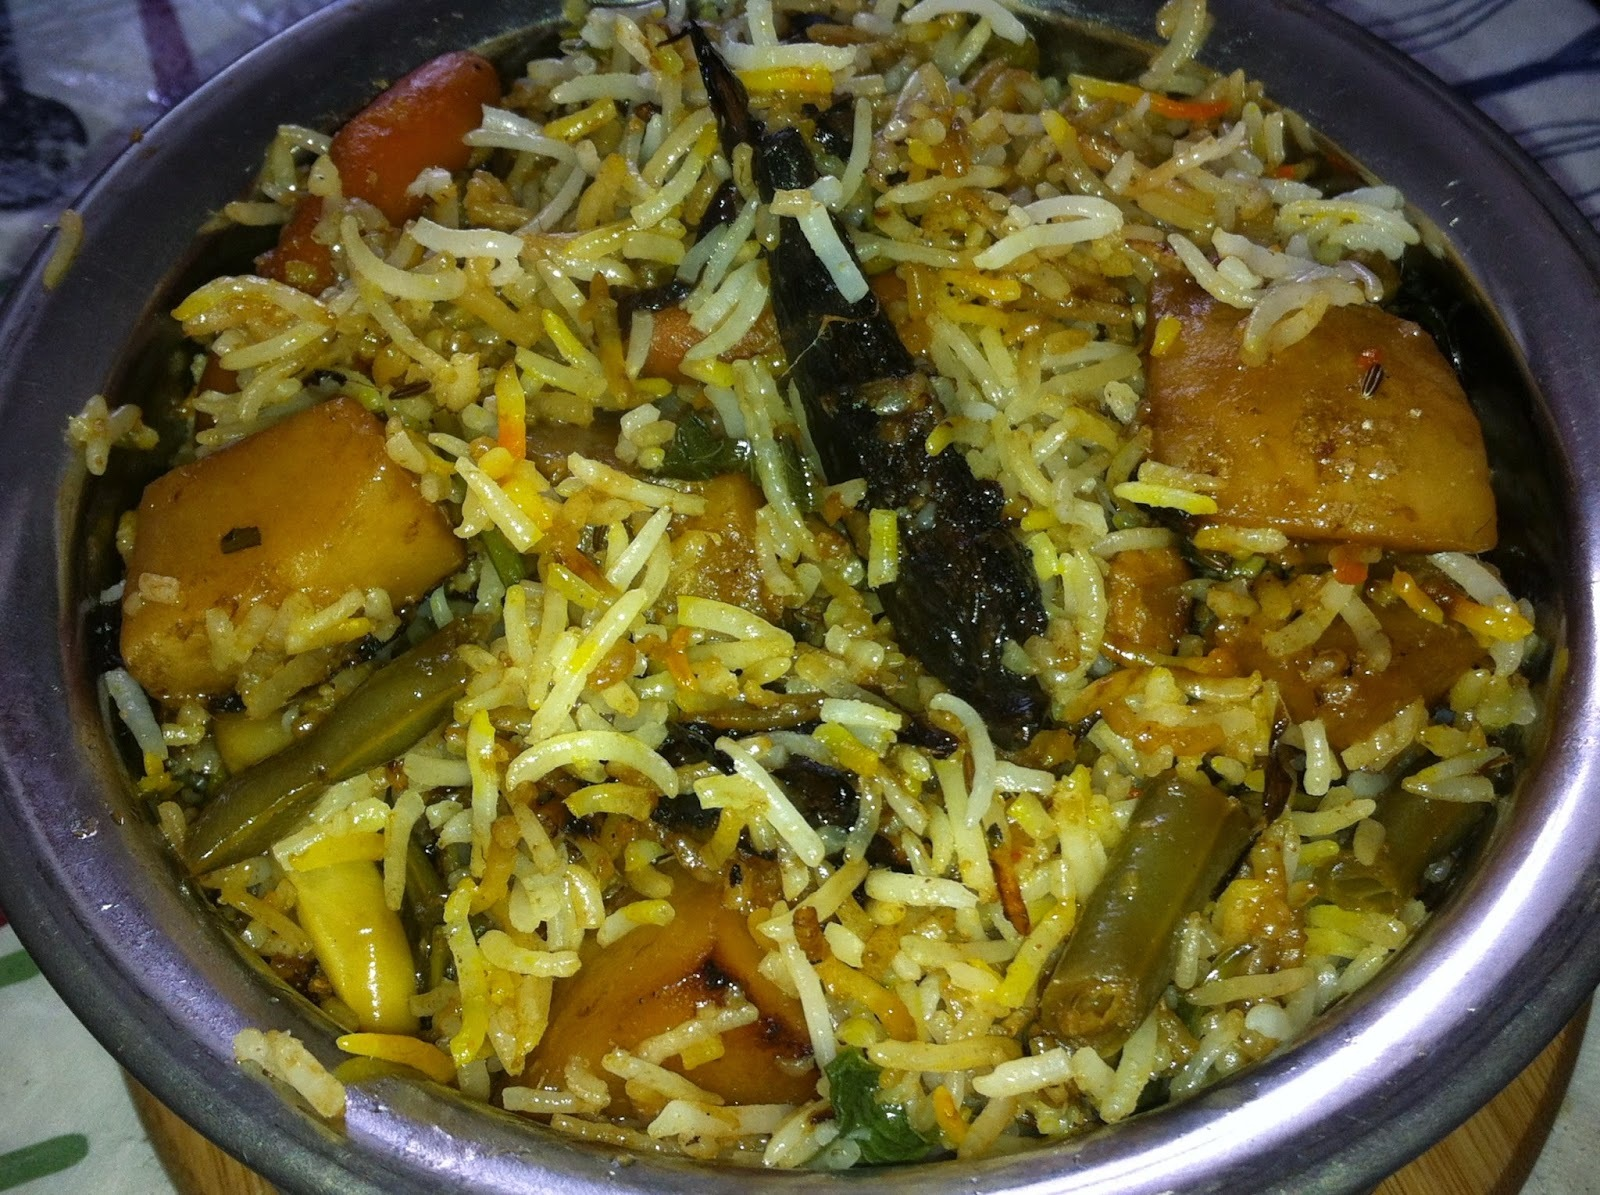 Hyderabad Vegetable Dum Biryani